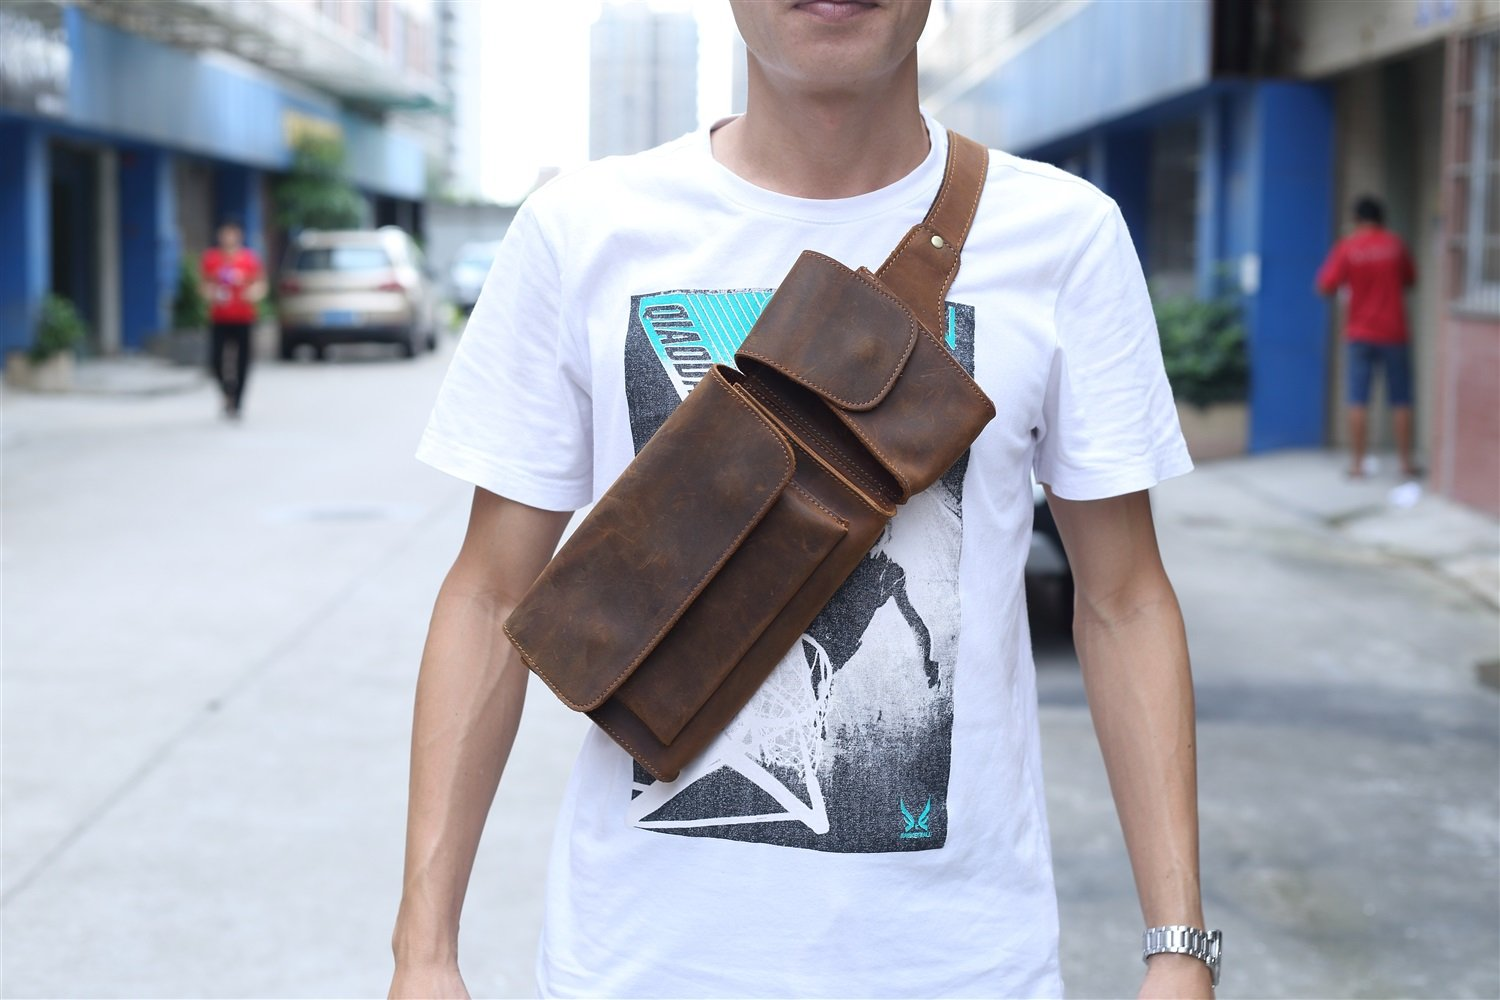 XINXI-MAO Mens Waist Pack Crossbody Sole Cowhide Chest Cross Bag Shoulder Bag Crazy Horse Skinny Purse Color : Brown, Size : S